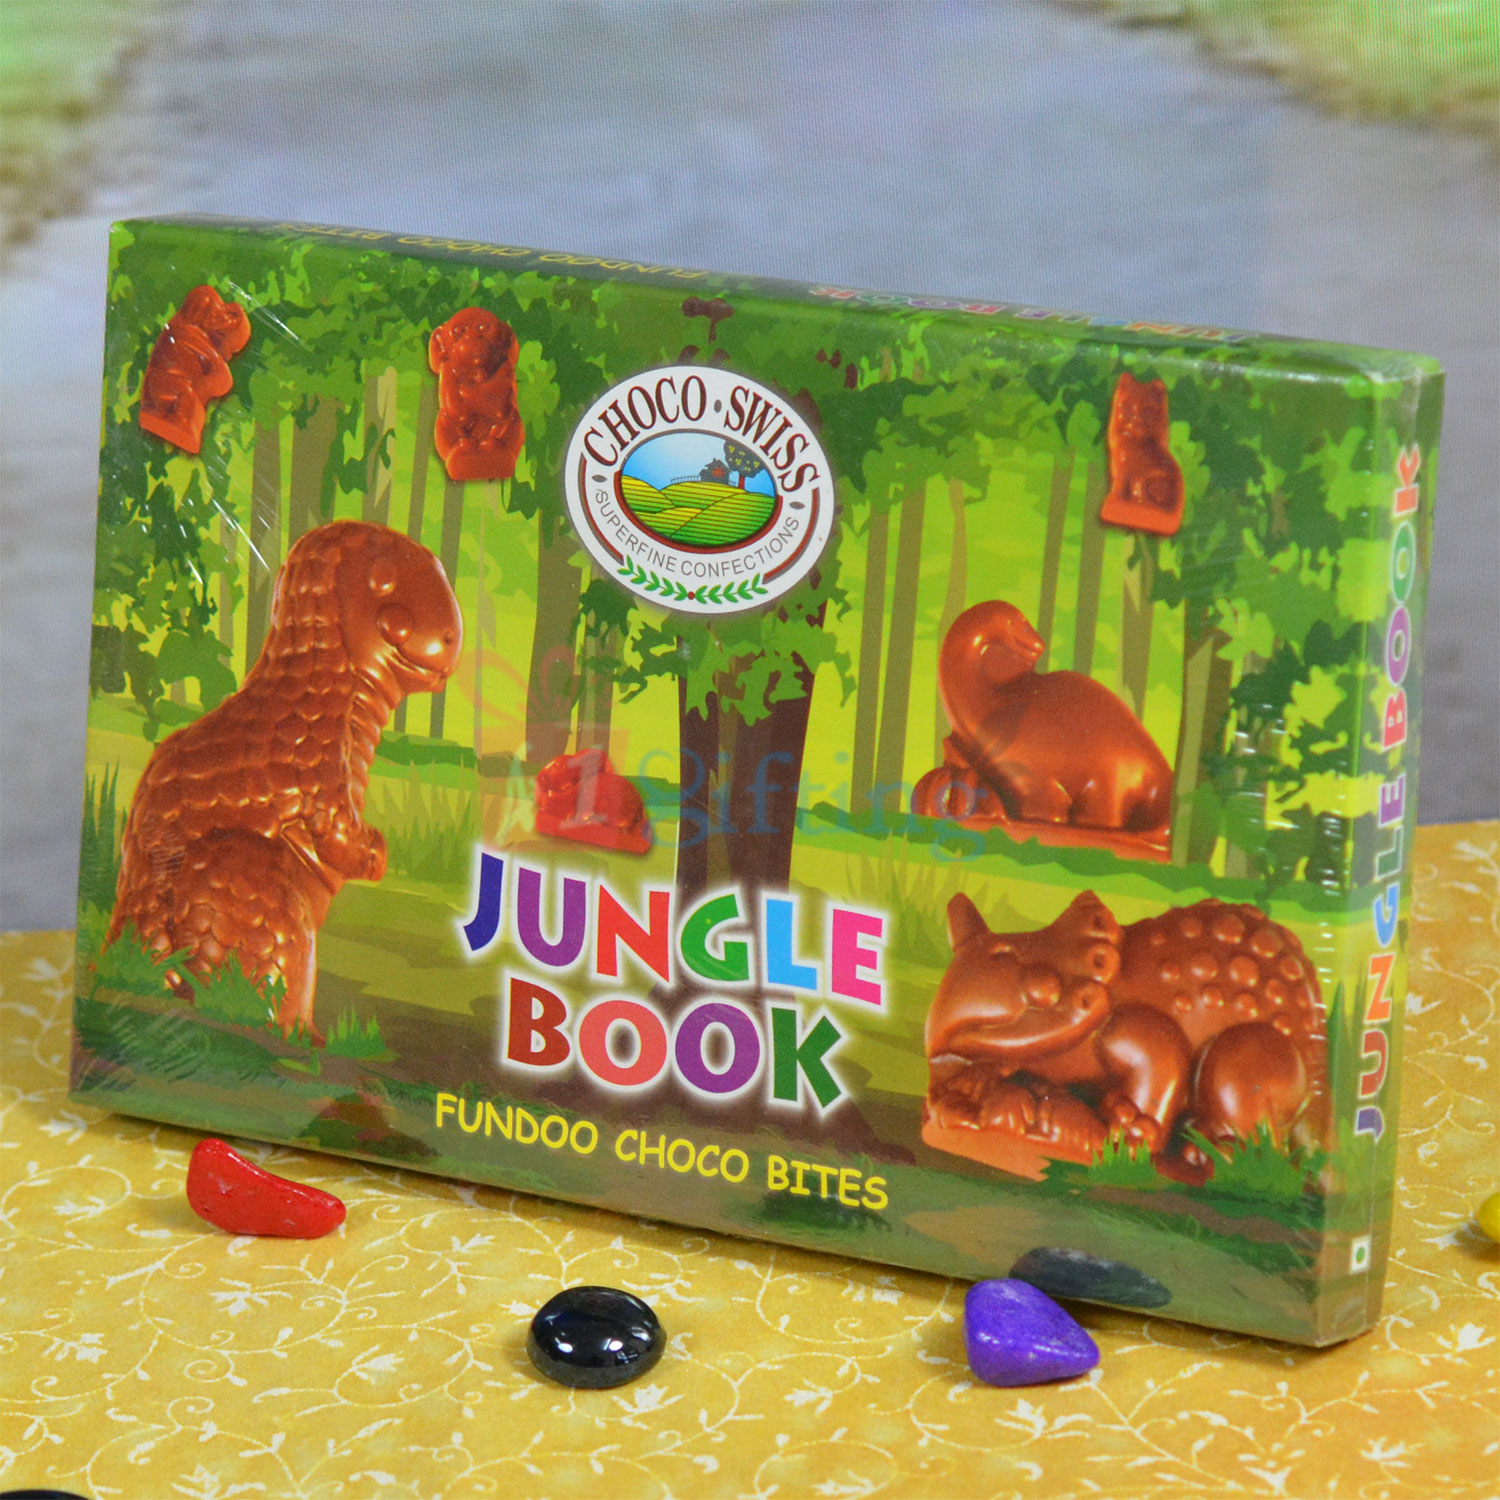 Choco Swiss Jungle Book Fundoo Choco Bites